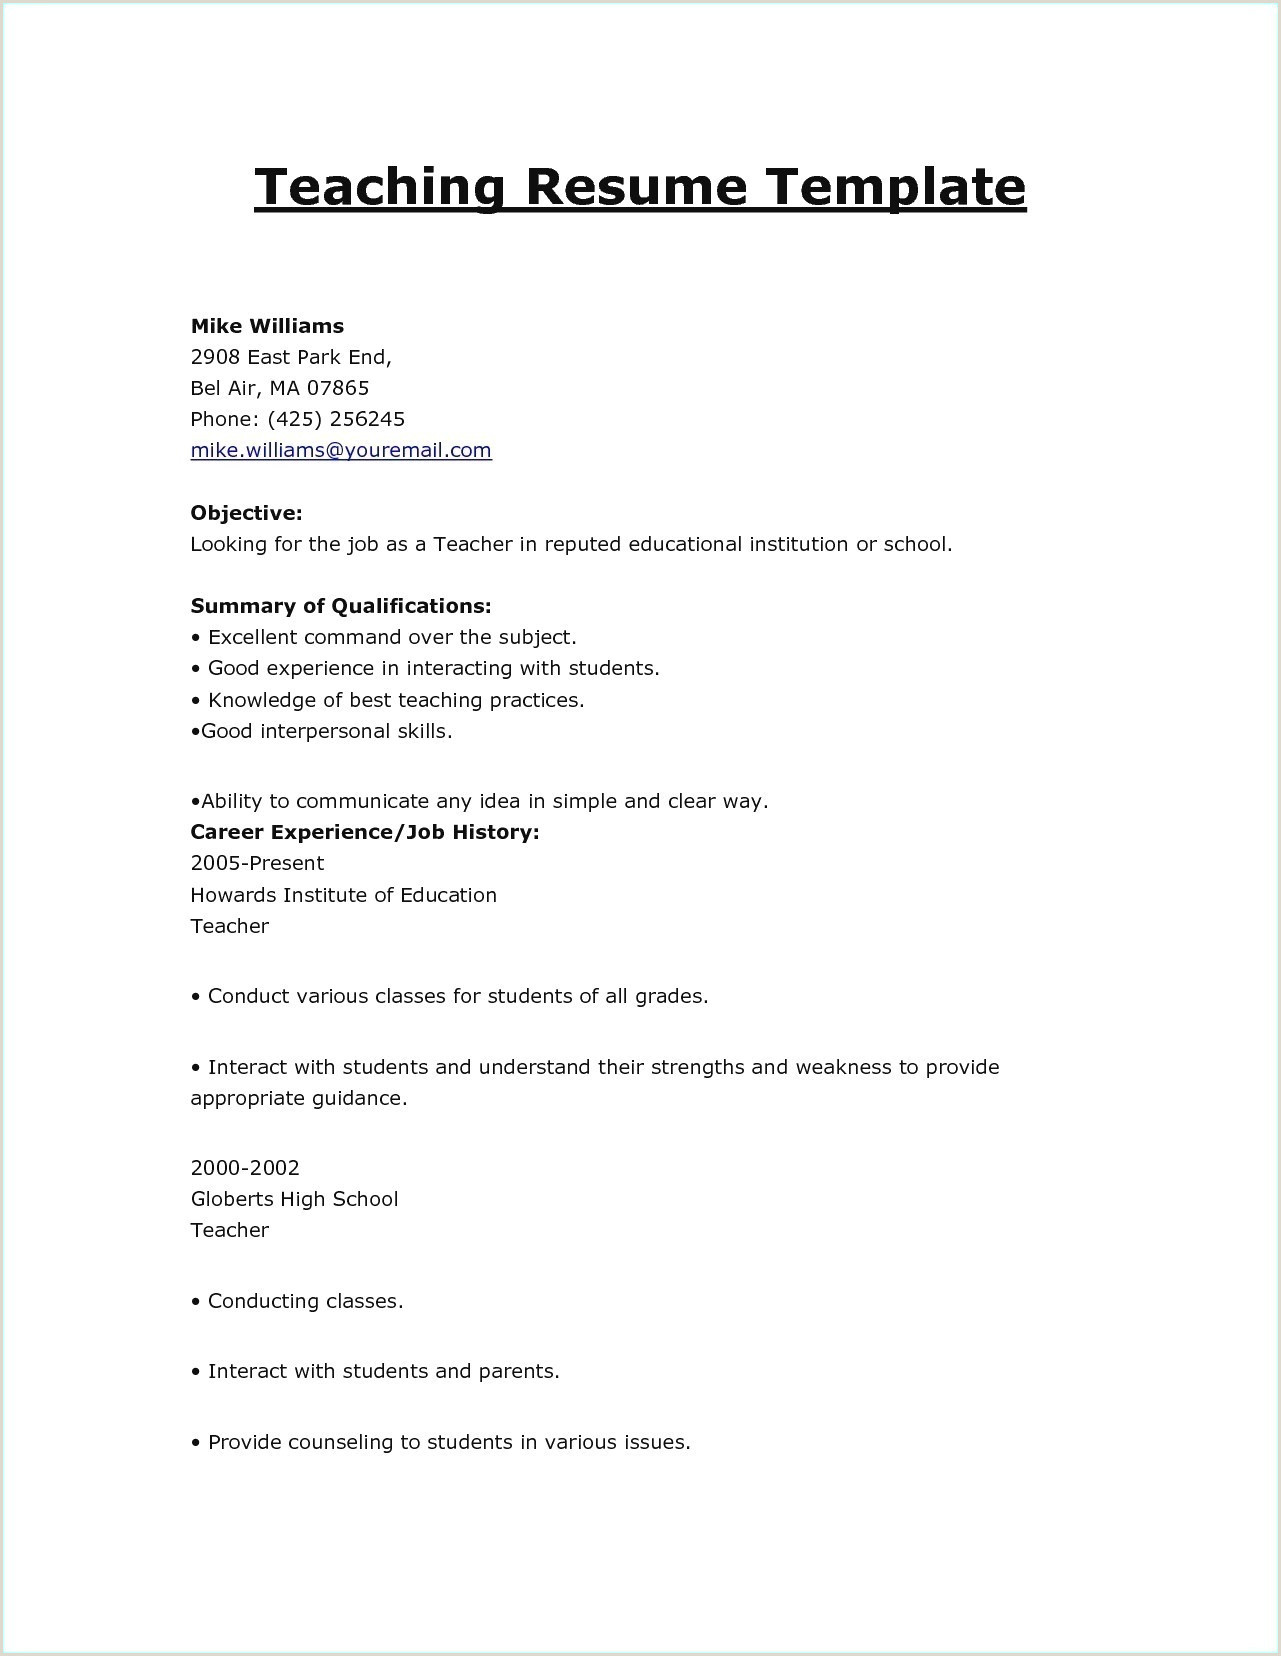 Resume Format For Job Easy Work History Resume Example New Unique Skills To Put Resume